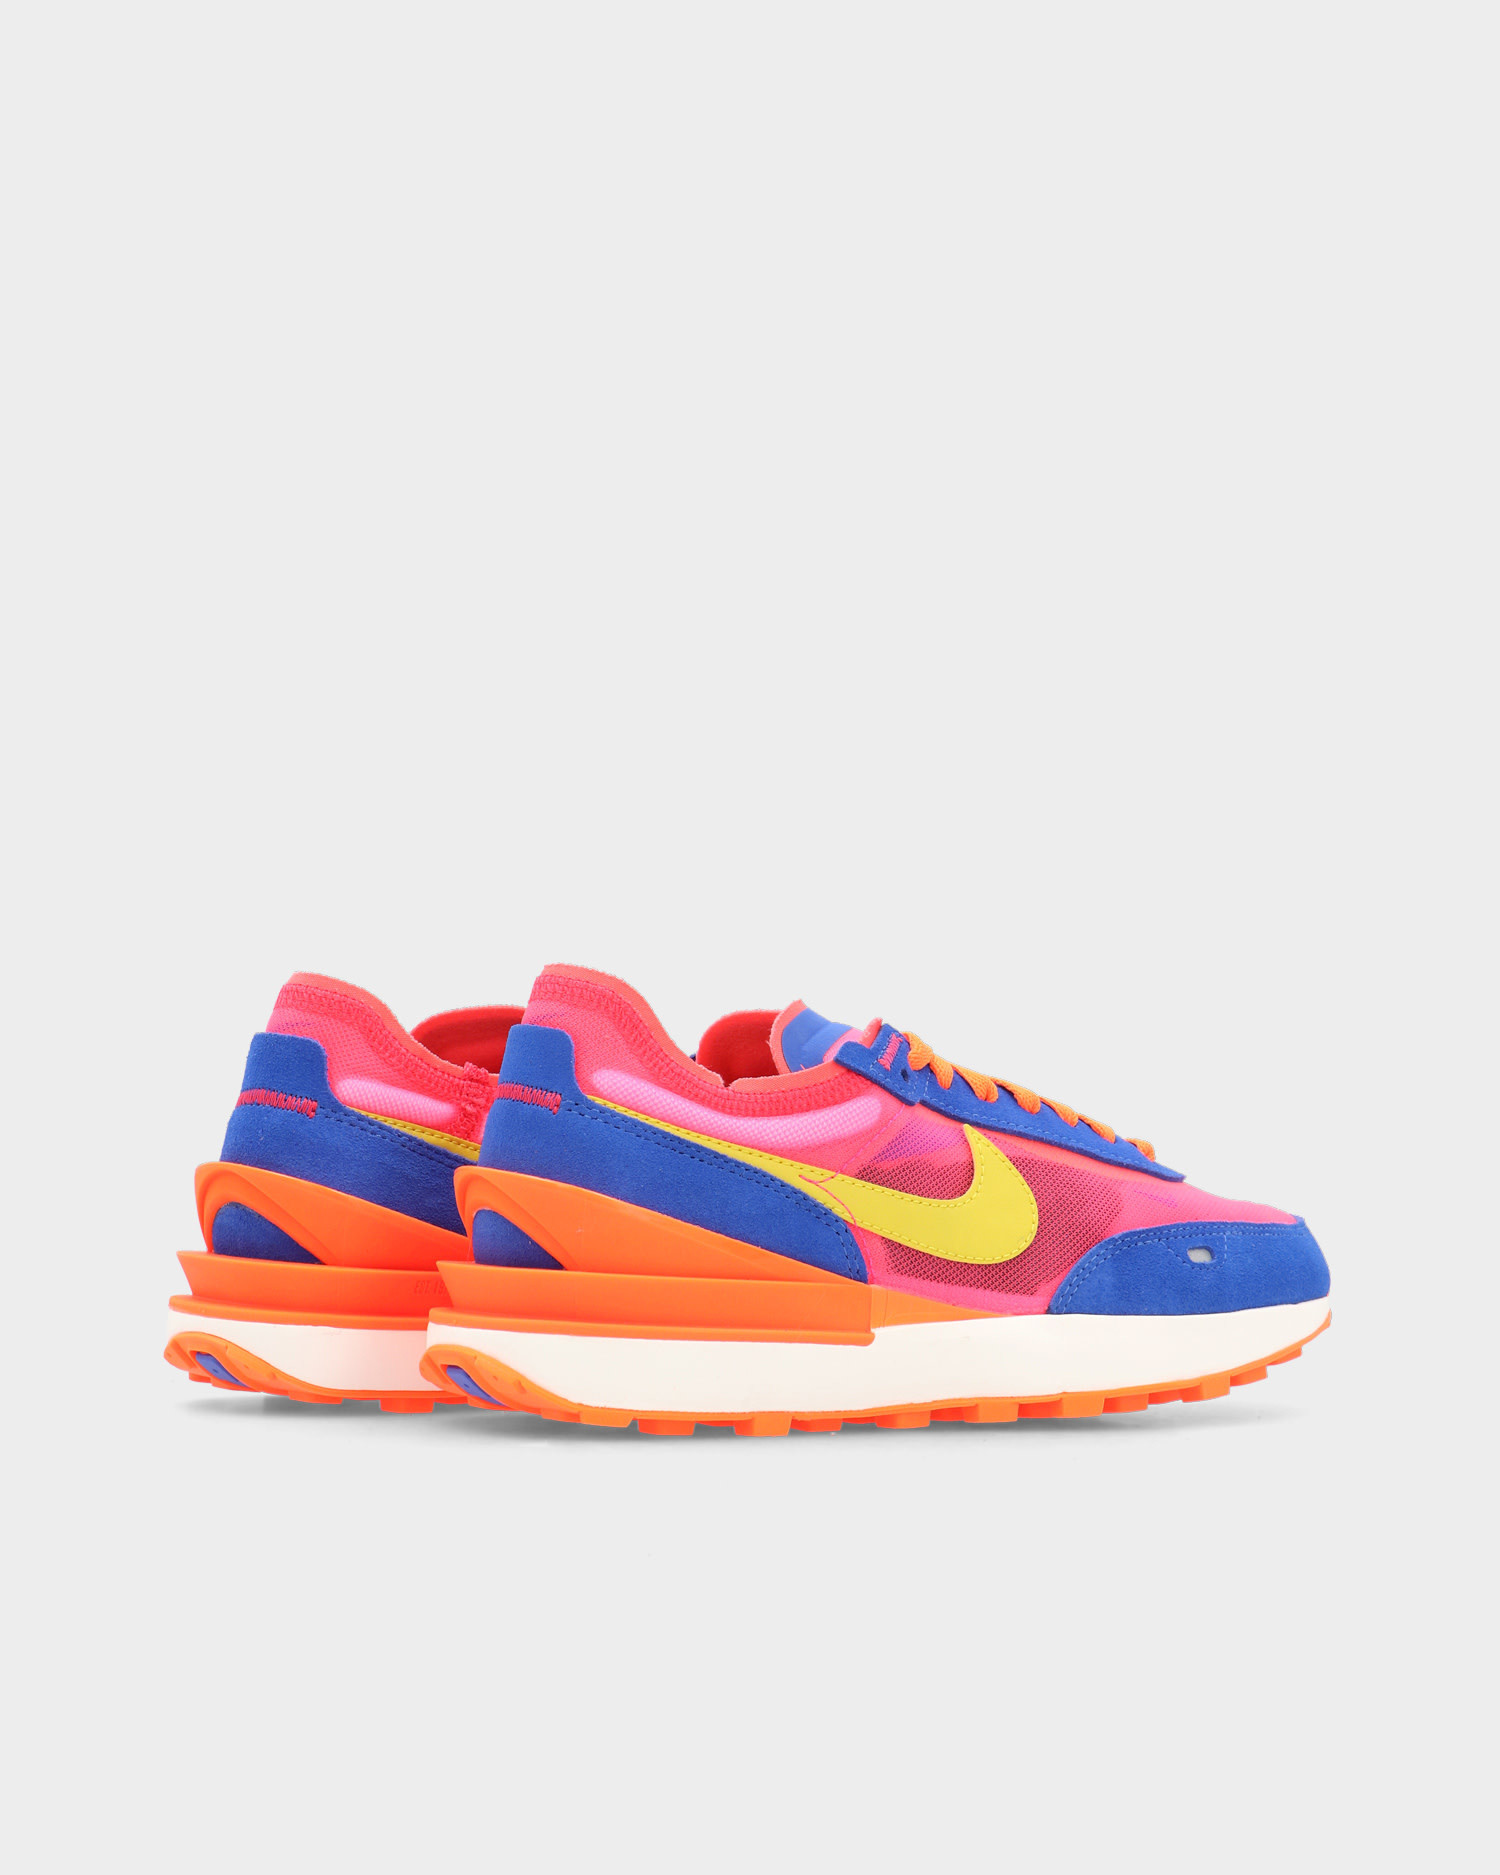 Nike Wmns Waffle One Racer blue/bright citron-hyper pink